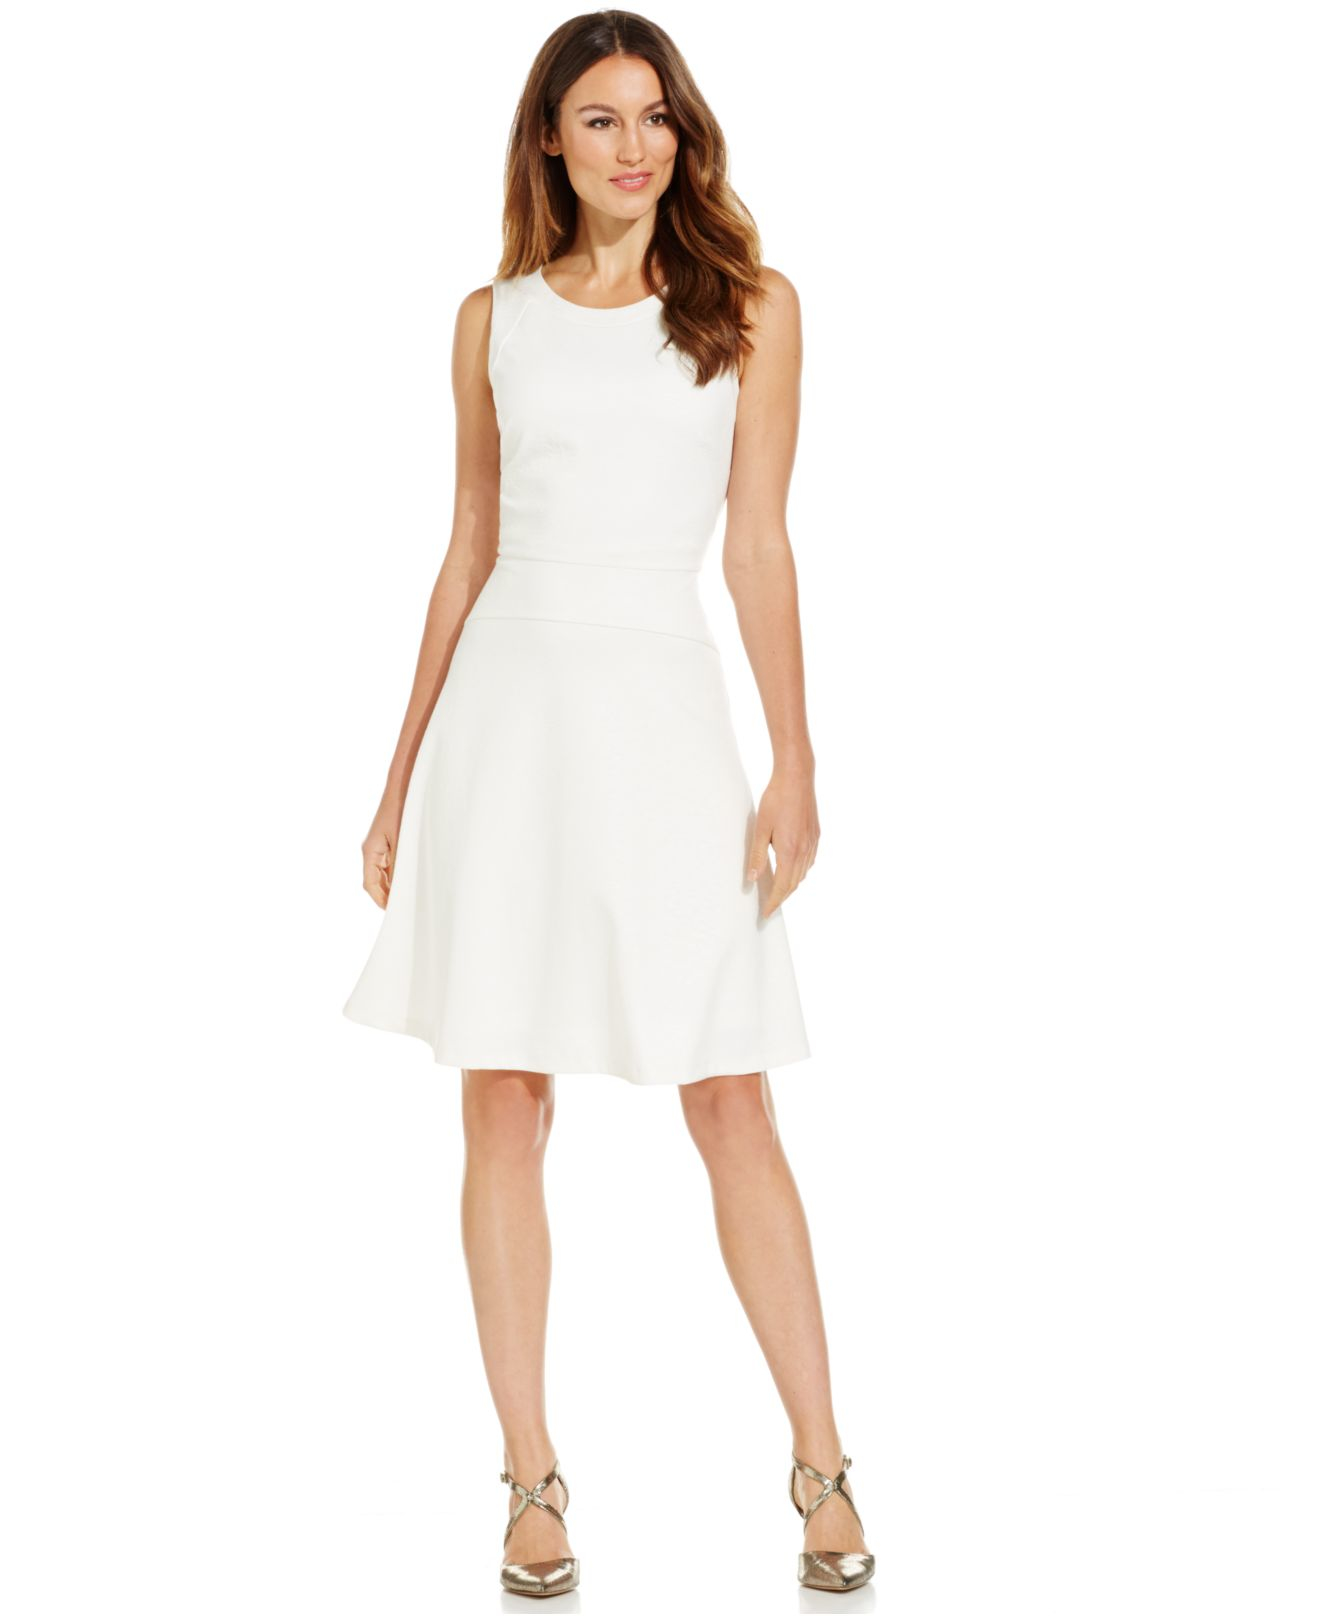 fa56cf846d2649 Calvin Klein Sleeveless Fit & Flare Dress in White - Lyst